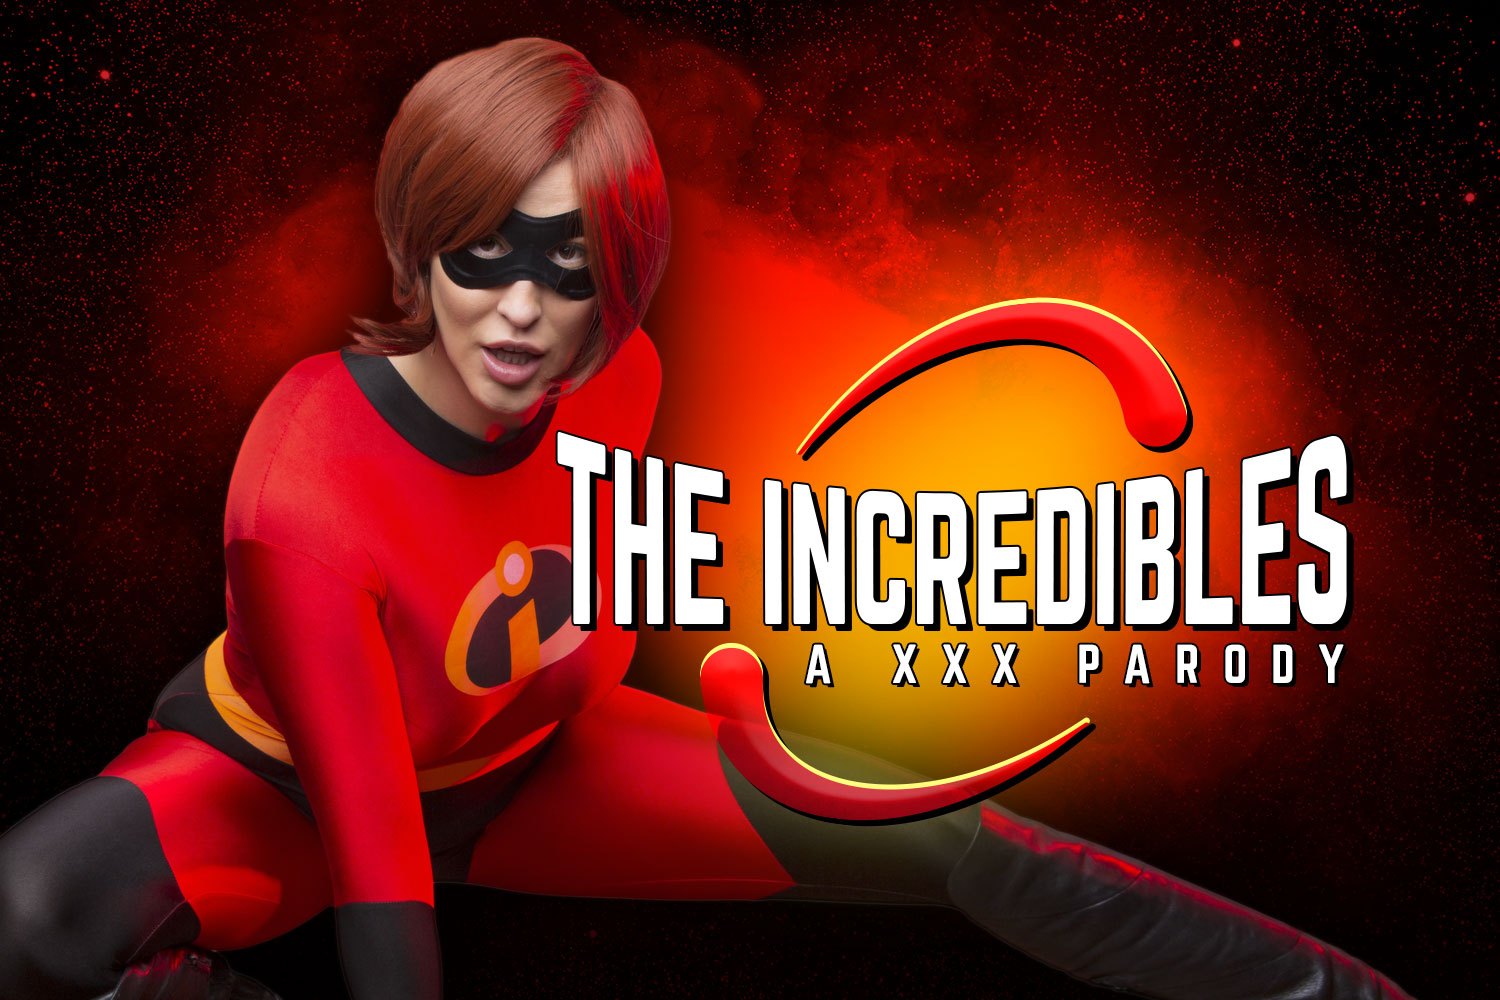 The Incredibles A XXX Parody Ryan Keely